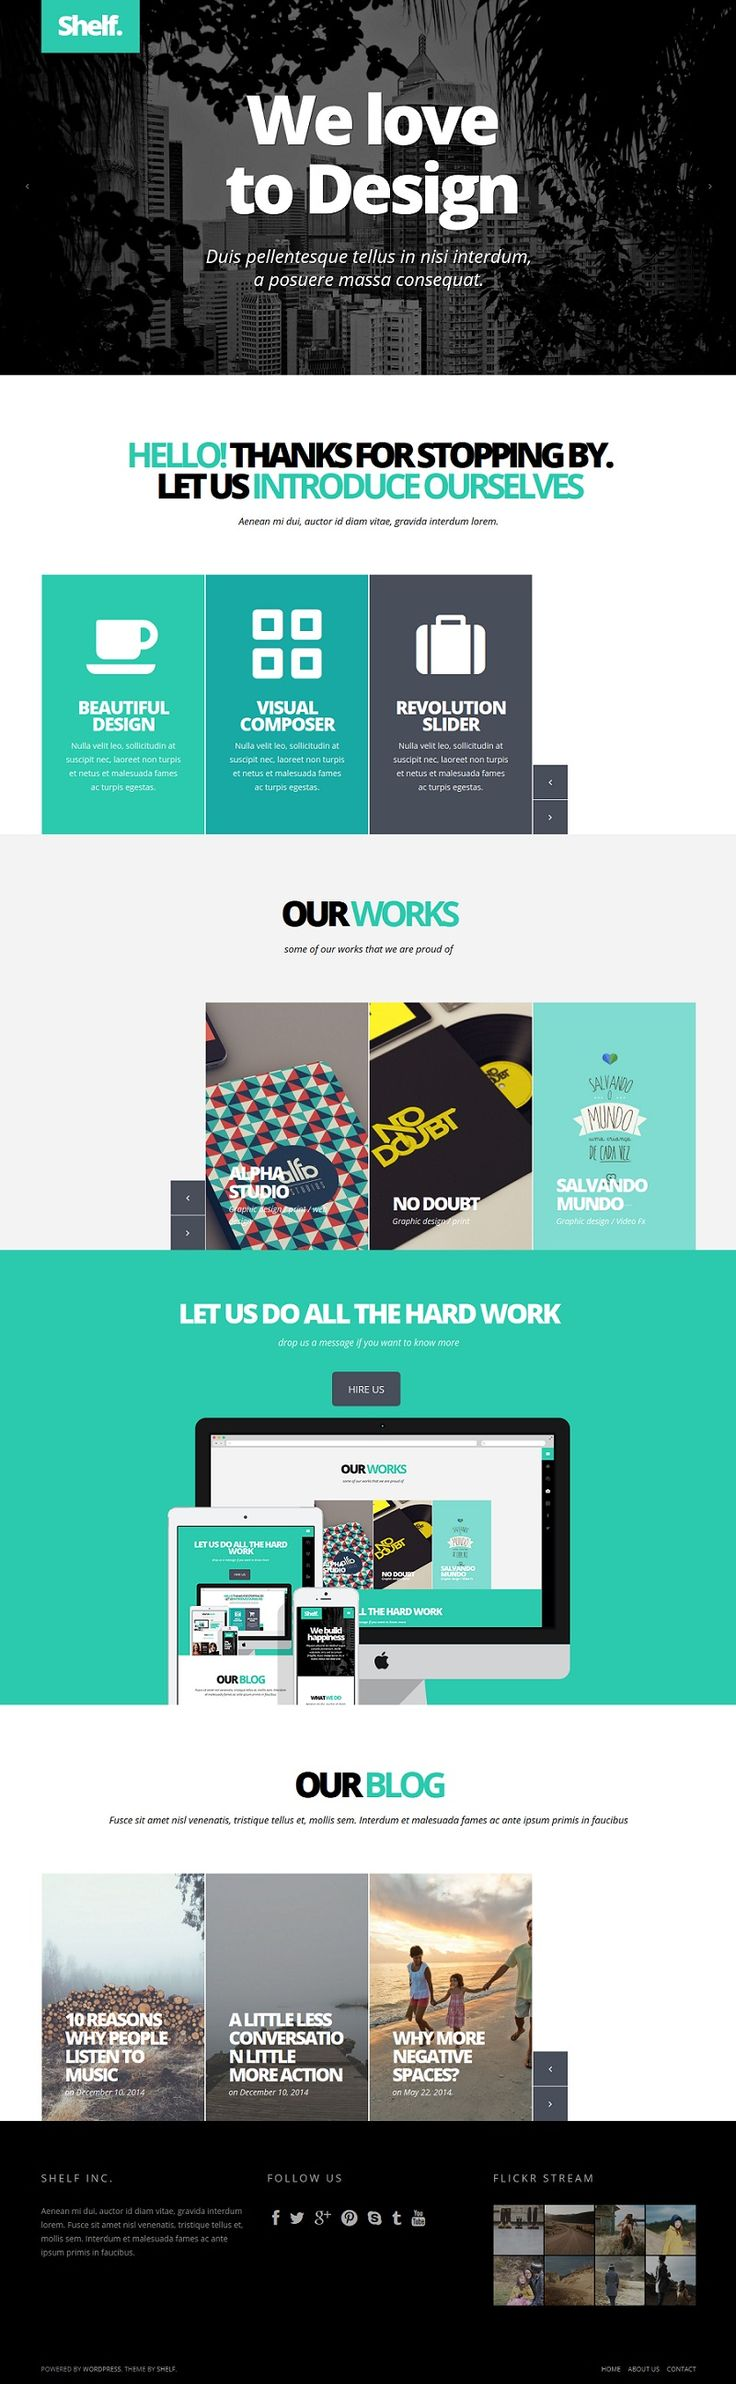 Poster design 50 excellent inspirations - Wordpress Themes Collection And Best Content Builder Ever